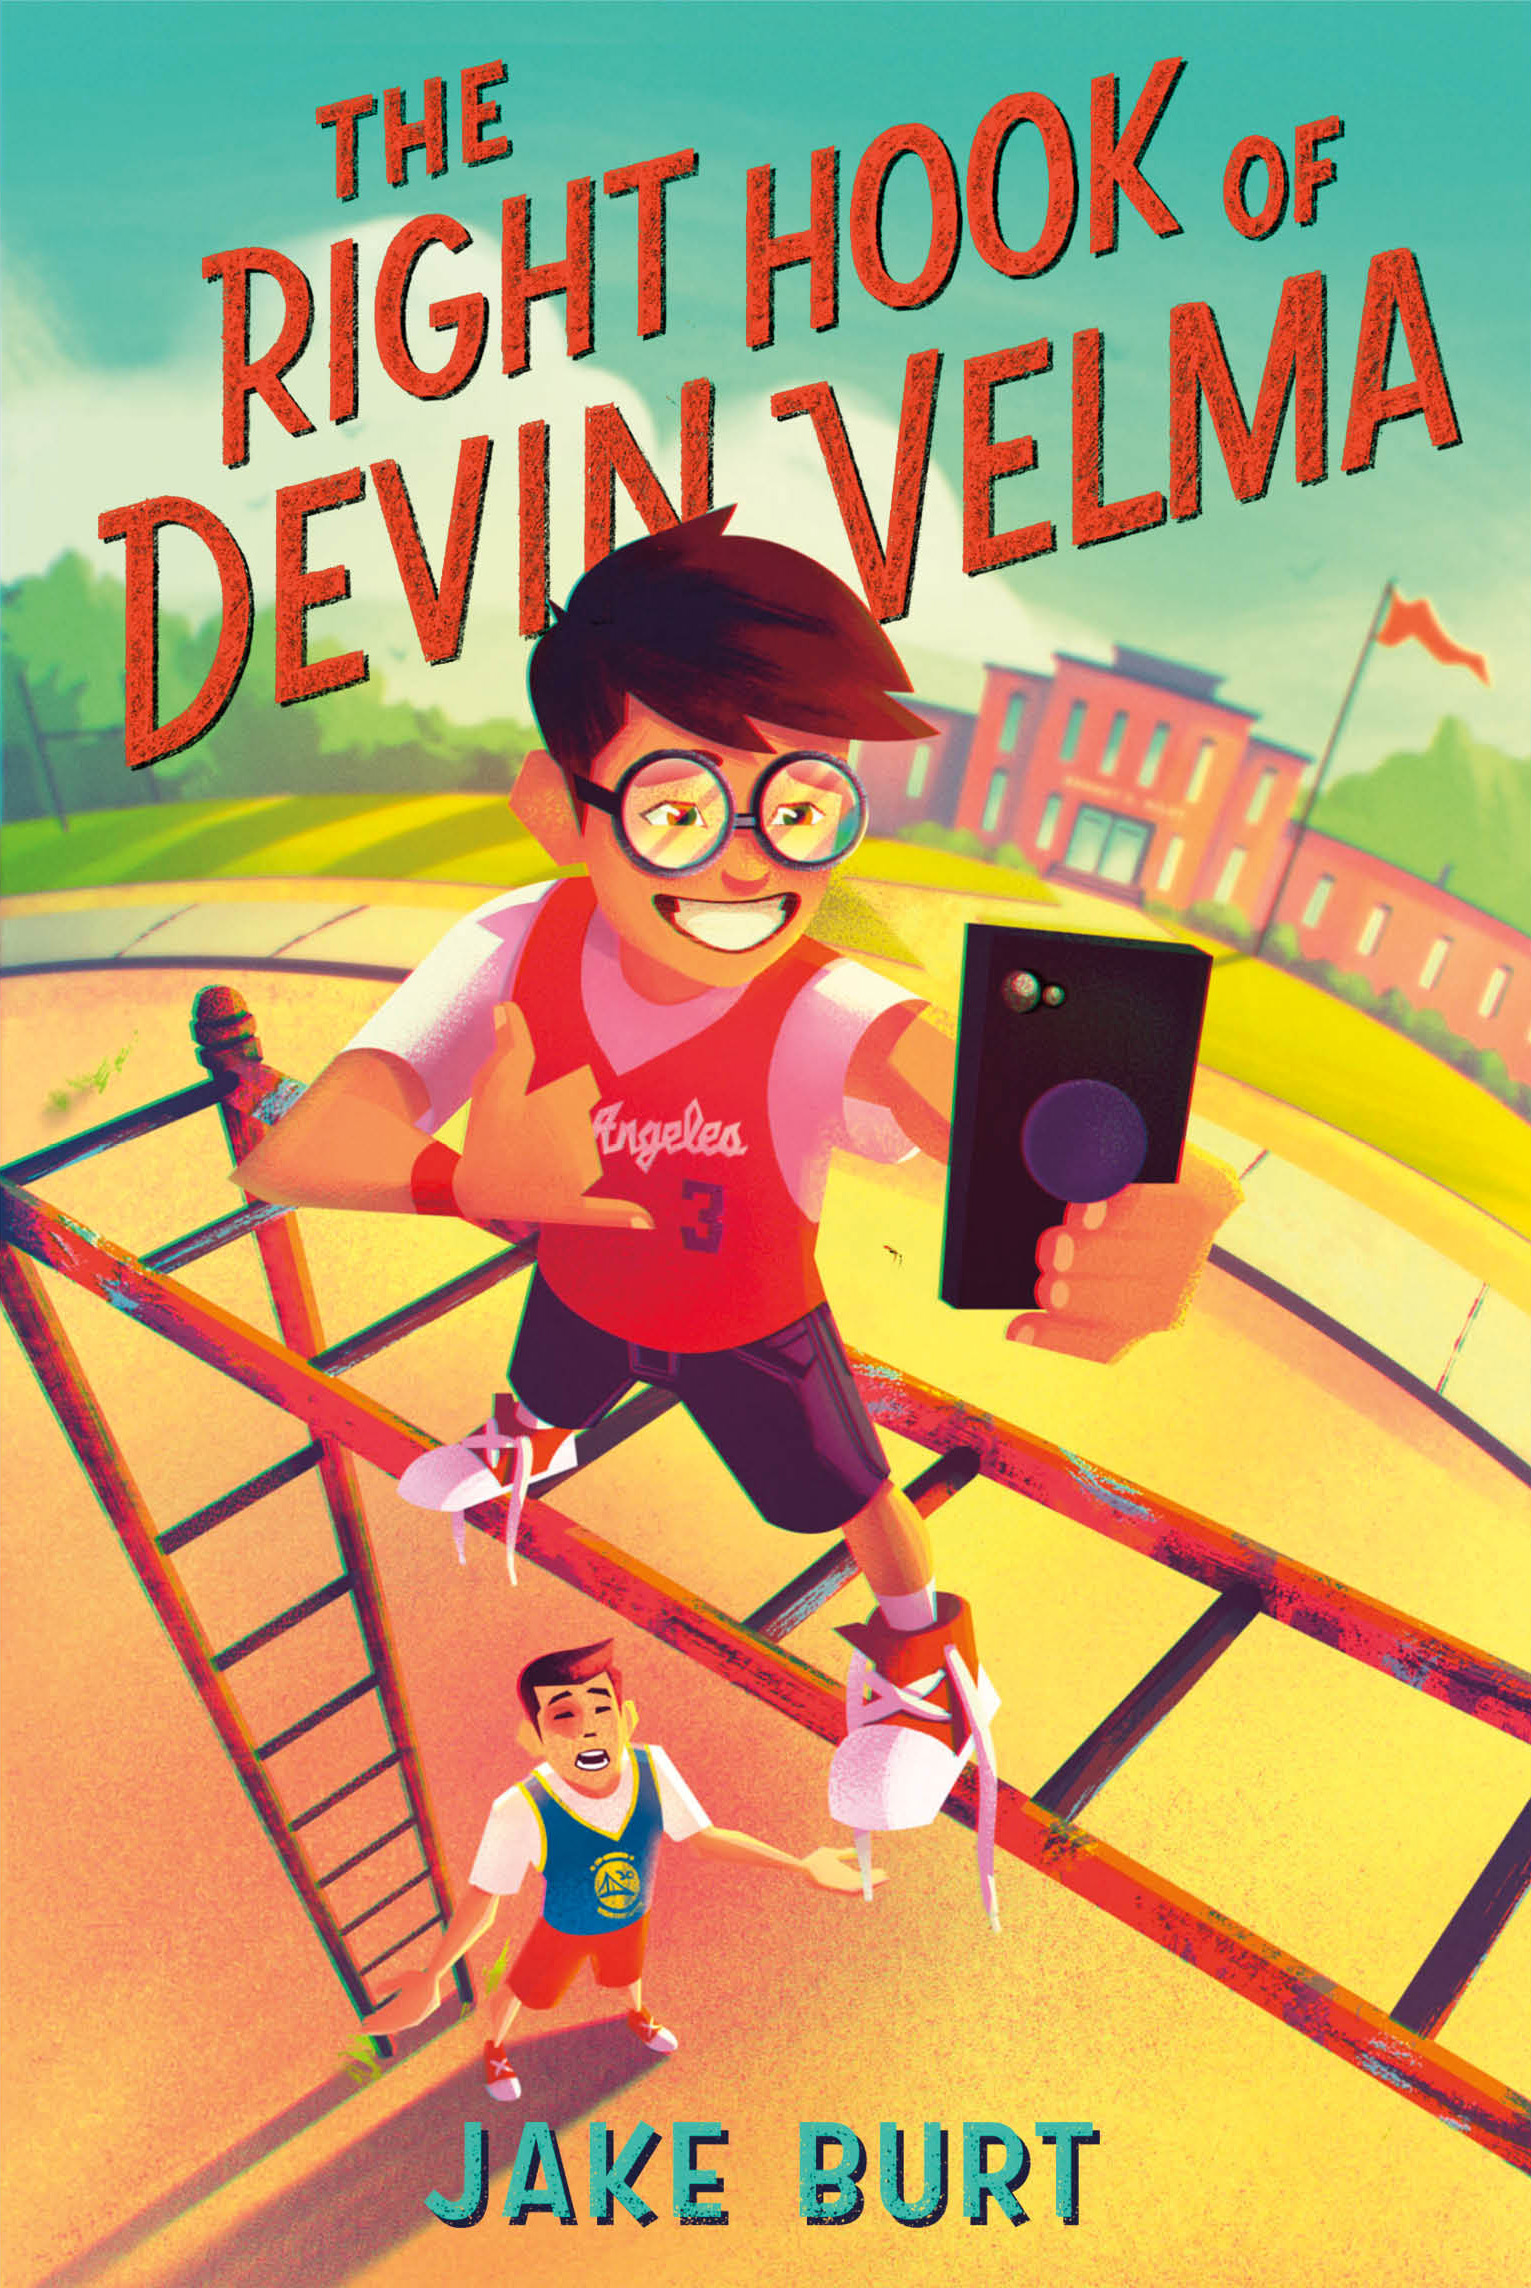 The Right Hook of Devin Velma by Jake Burt